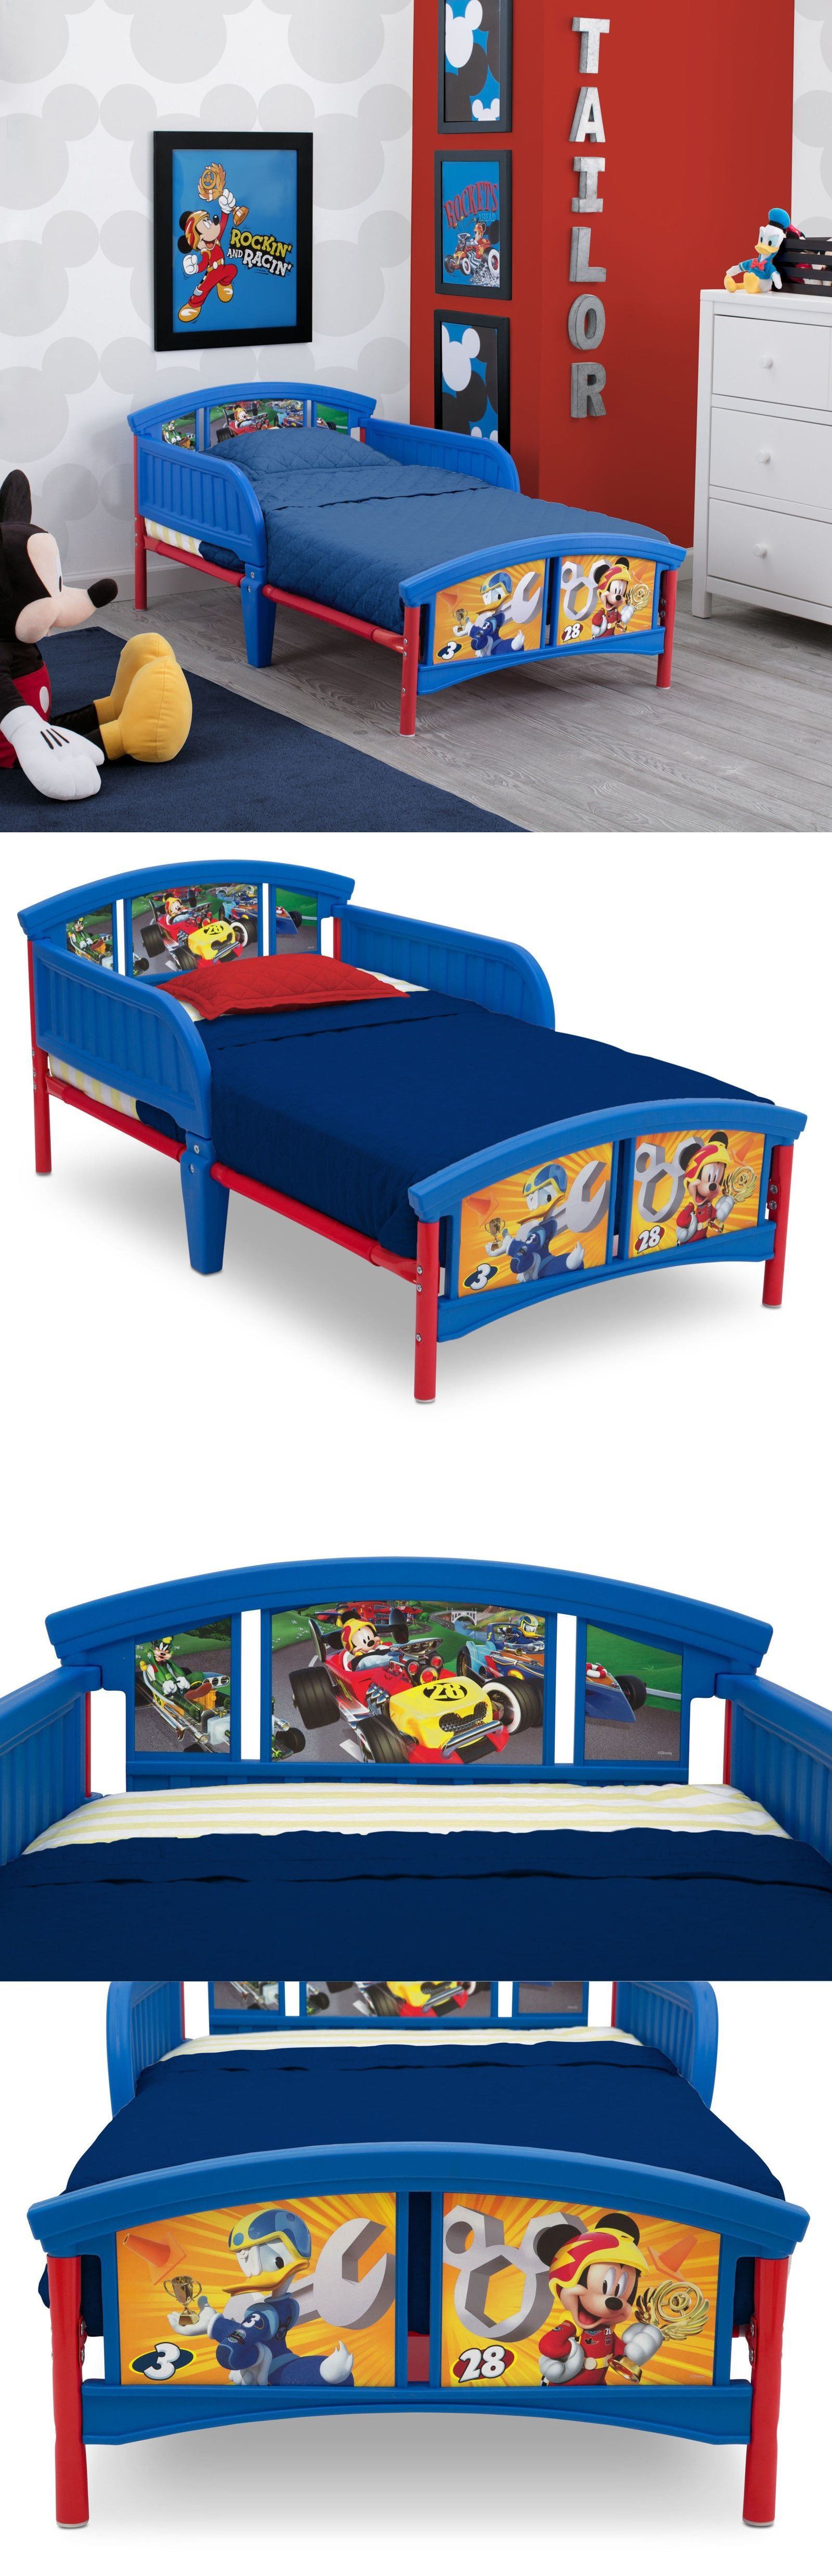 Minnie Mouse Bedroom Furniture Fresh Bedroom Furniture Disney Mickey Mouse Plastic toddler